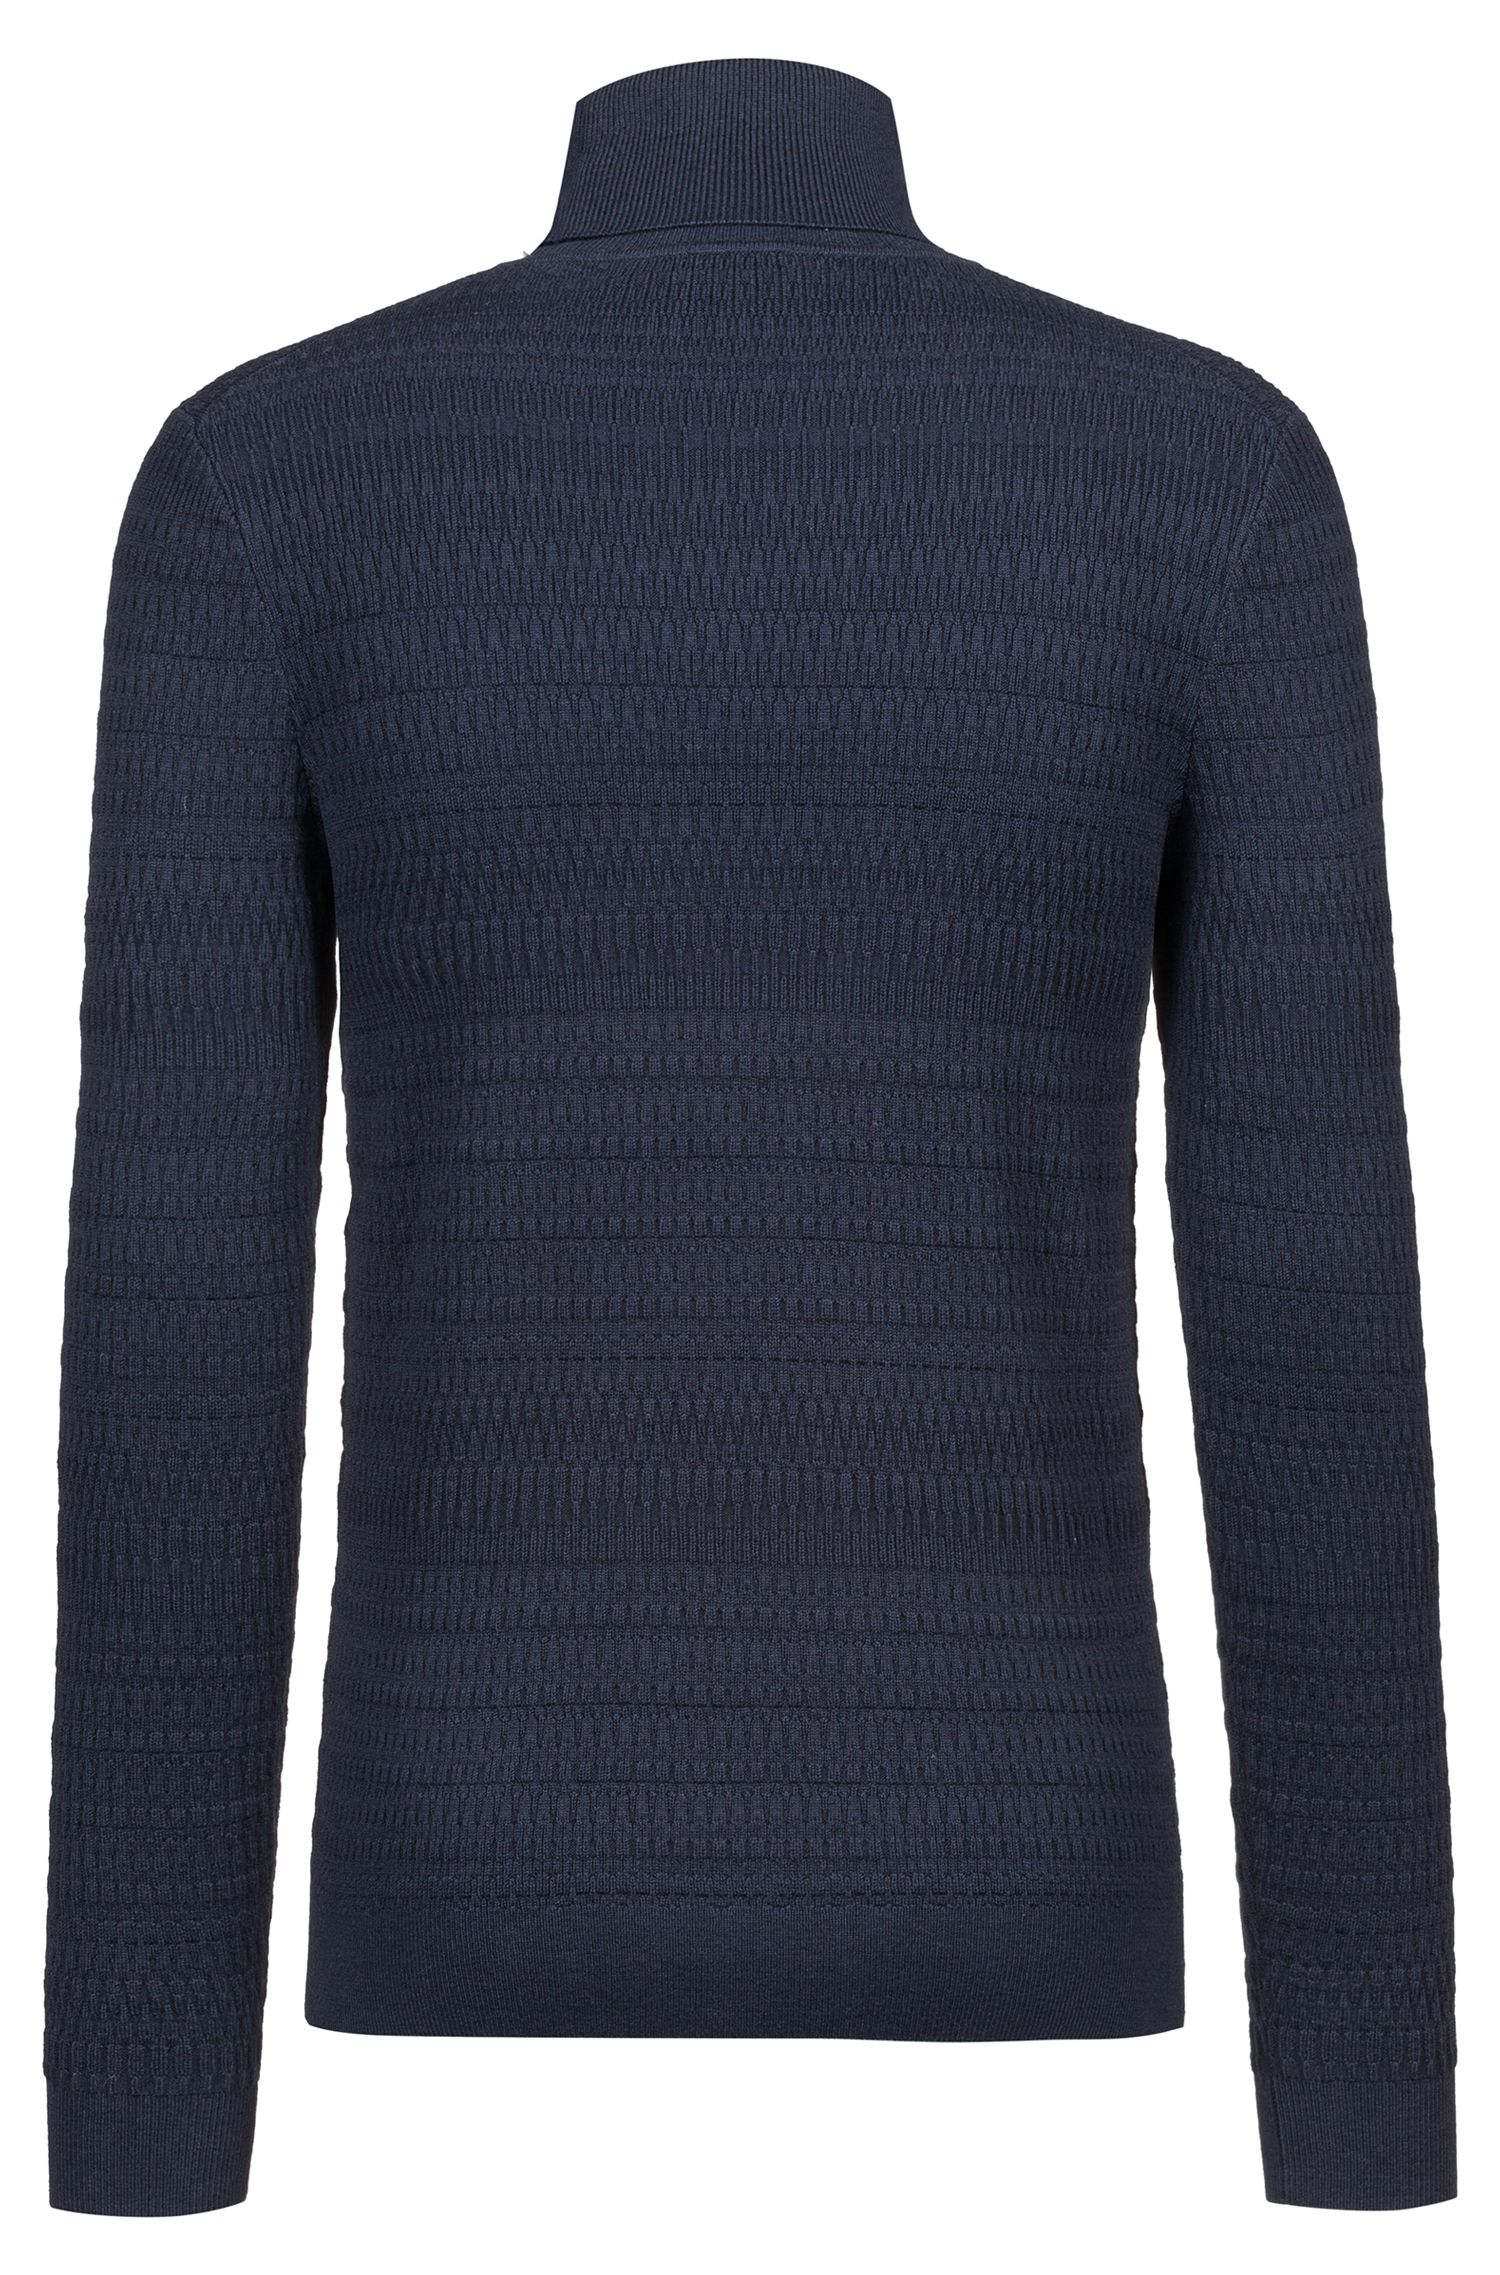 Extra-slim-fit turtleneck sweater in wool and cotton, Dunkelblau